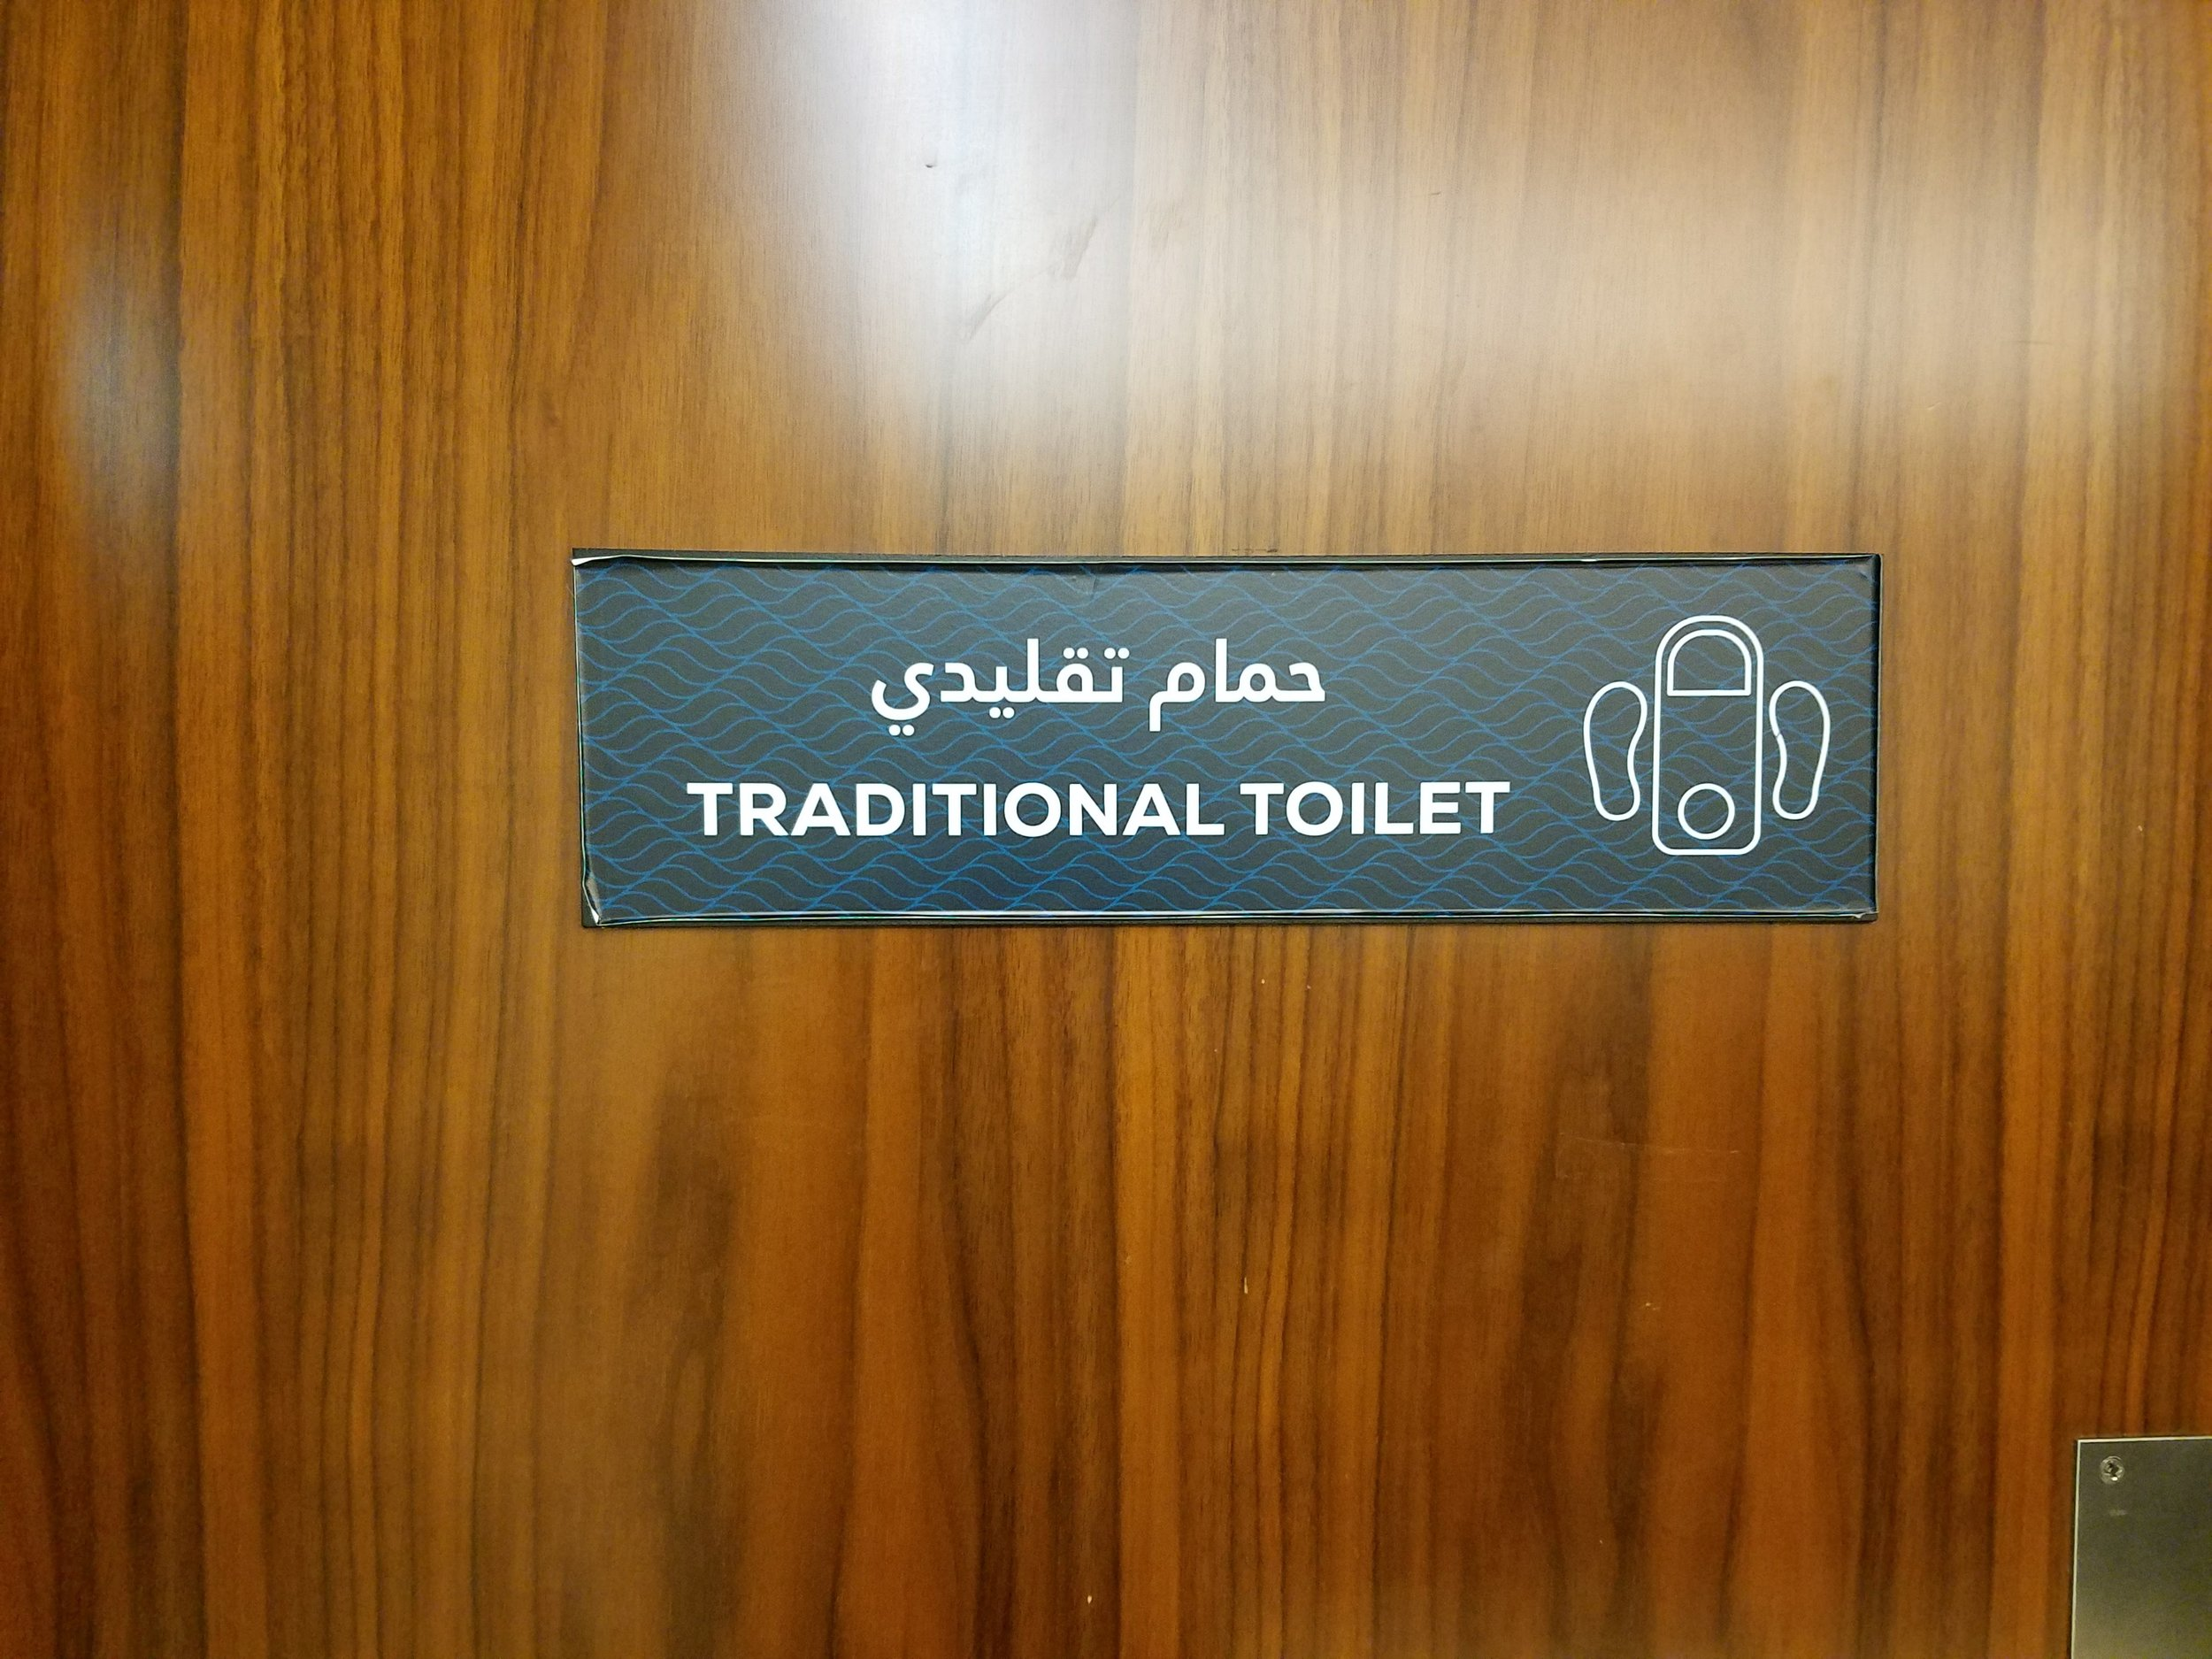 You can opt for a traditional squat toilet over a seated toilet in the United Arab Emirates, if you so desire